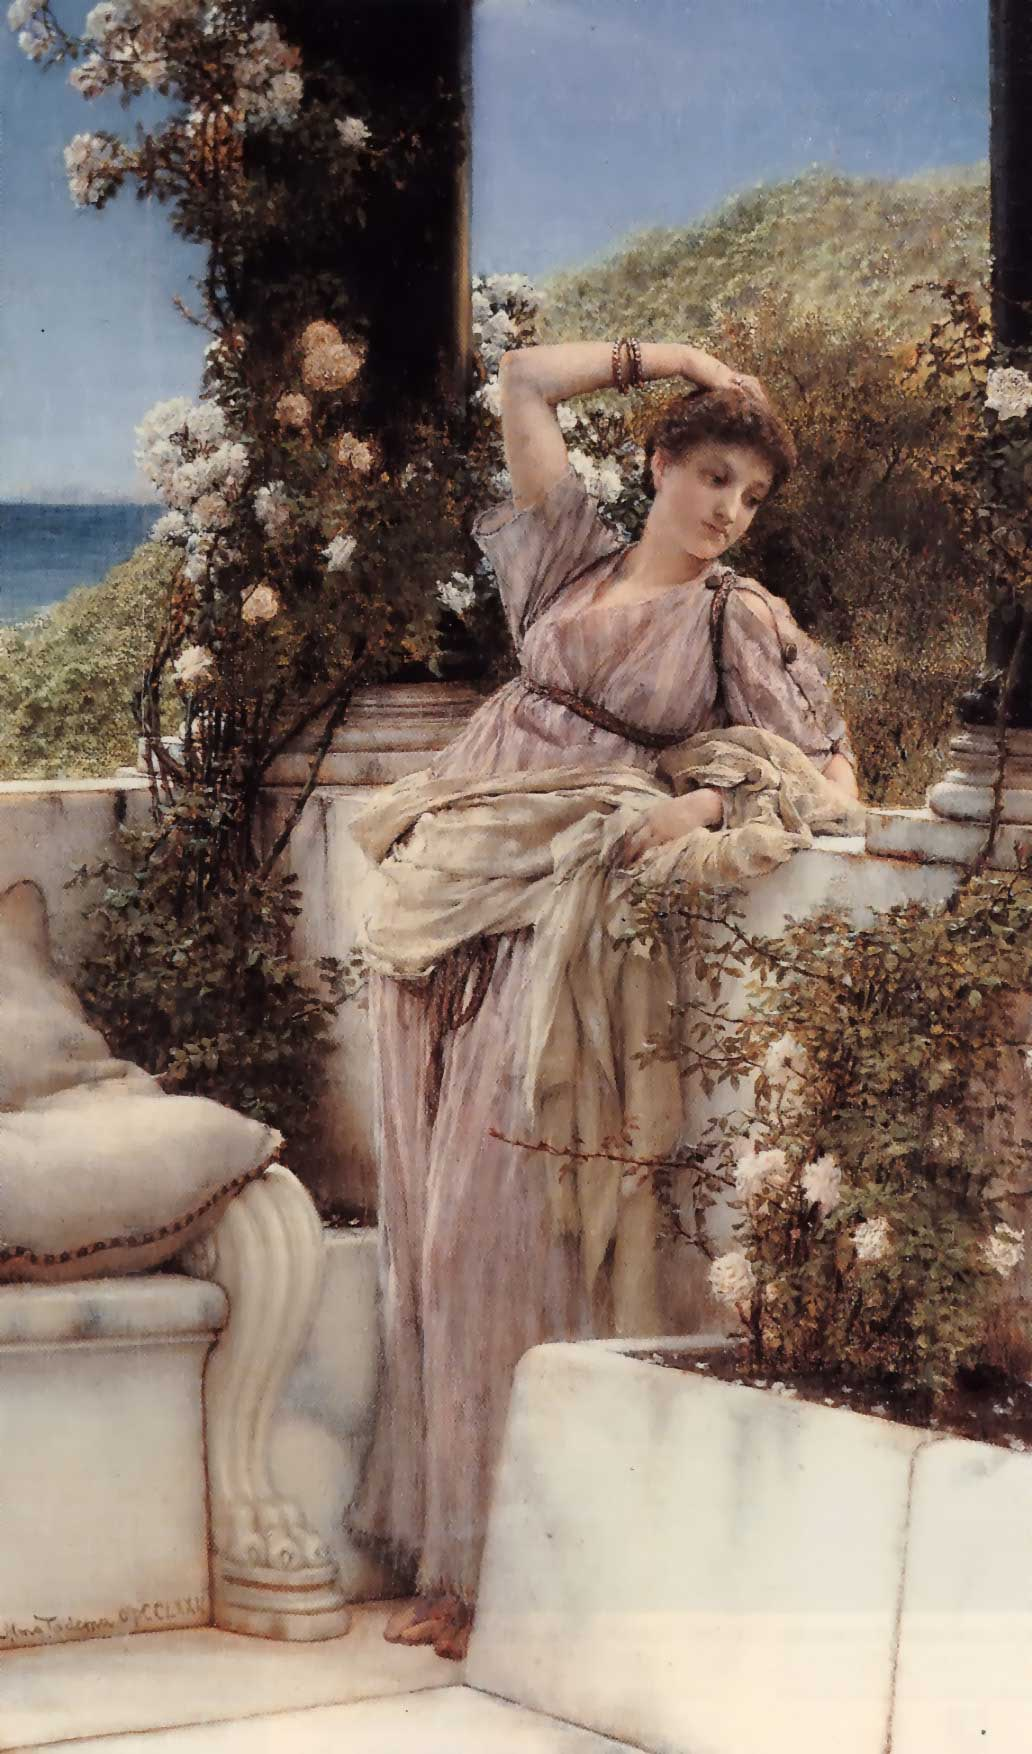 SIR LAWRENCE ALMA TADEMA — Thou Rose of All the Roses.